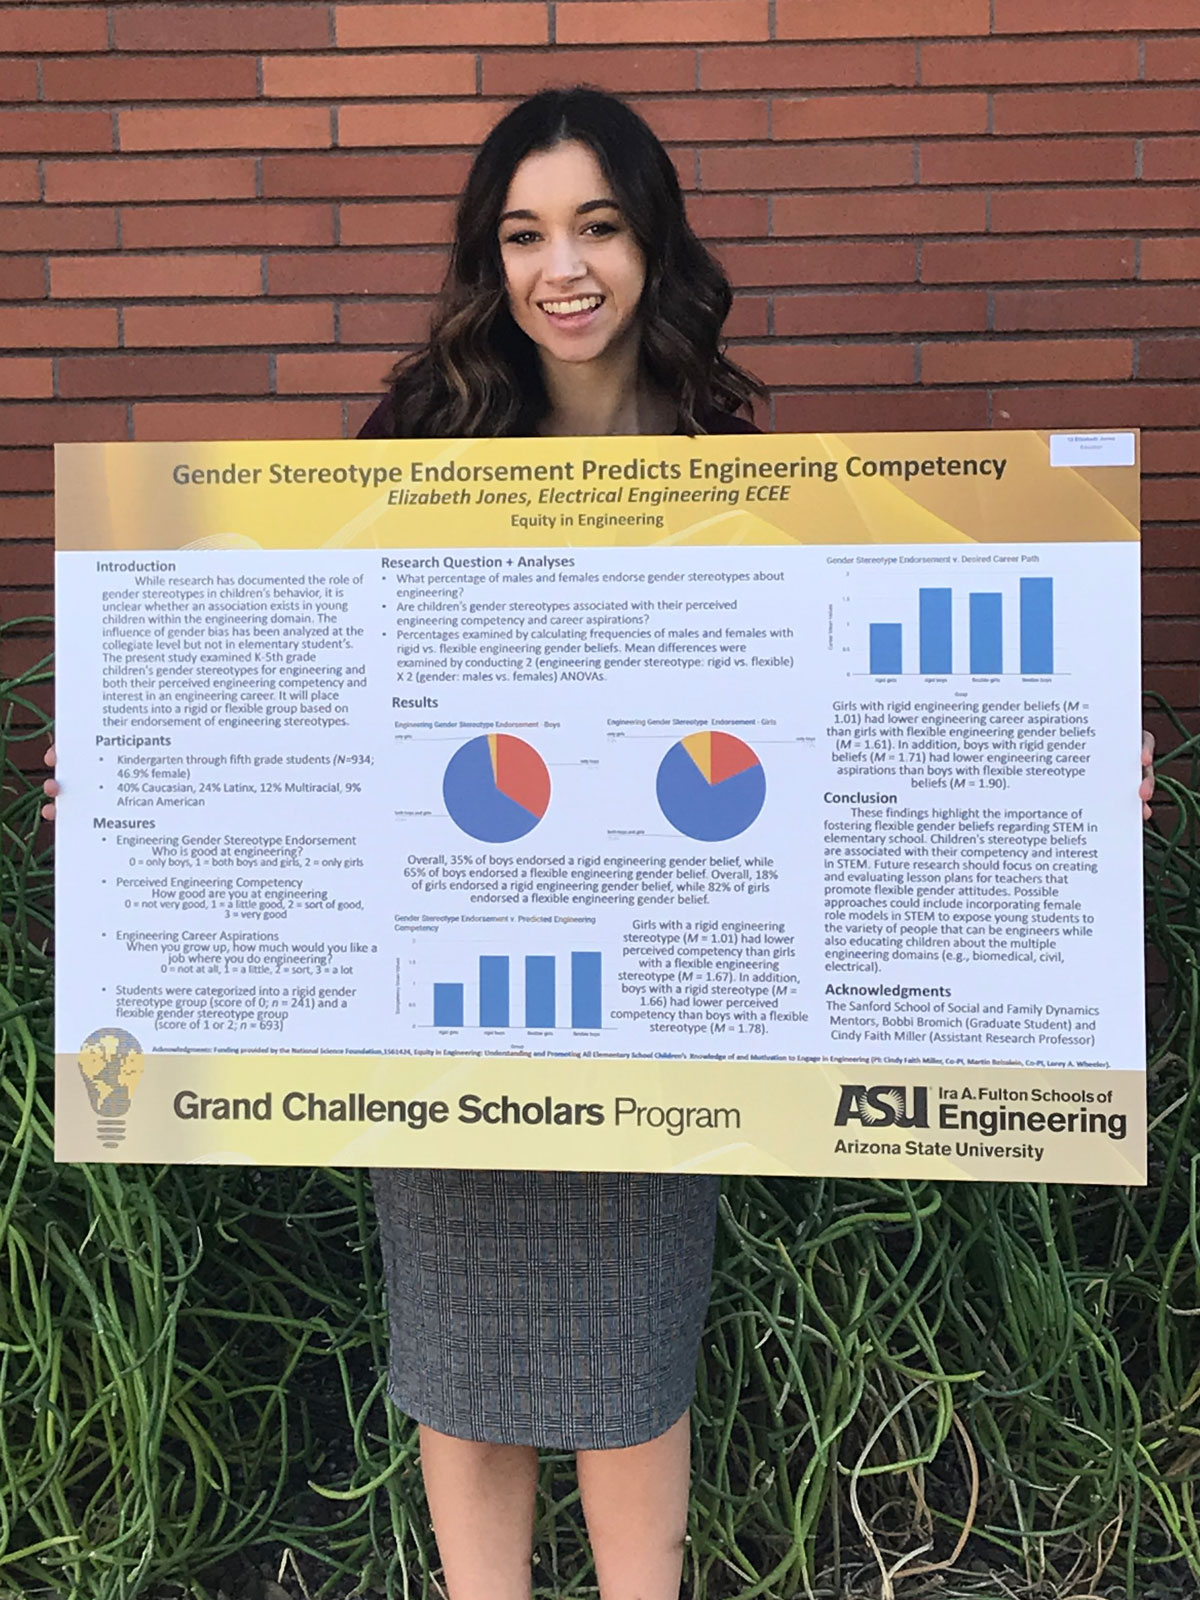 Elizabeth Jones holds a Grand Challenges Scholars Program poster that details her project about gender stereotypes affecting engineering competency in elementary school students.